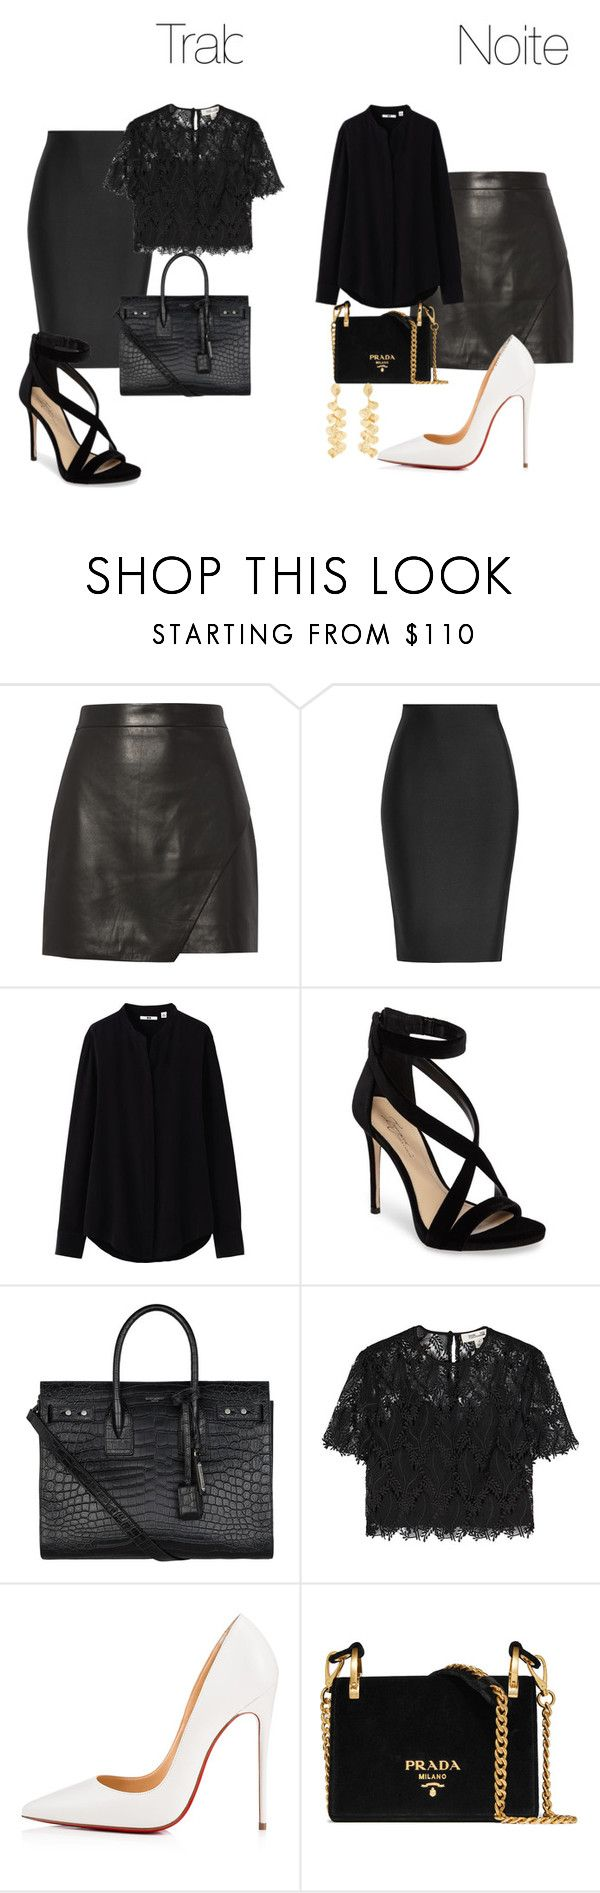 """""""Look Job and Night"""" by quelstylist on Polyvore featuring moda, Michelle Mason, Roland Mouret, Uniqlo, Imagine by Vince Camuto, Yves Saint Laurent, Diane Von Furstenberg, Christian Louboutin, Prada e Kenneth Jay Lane"""